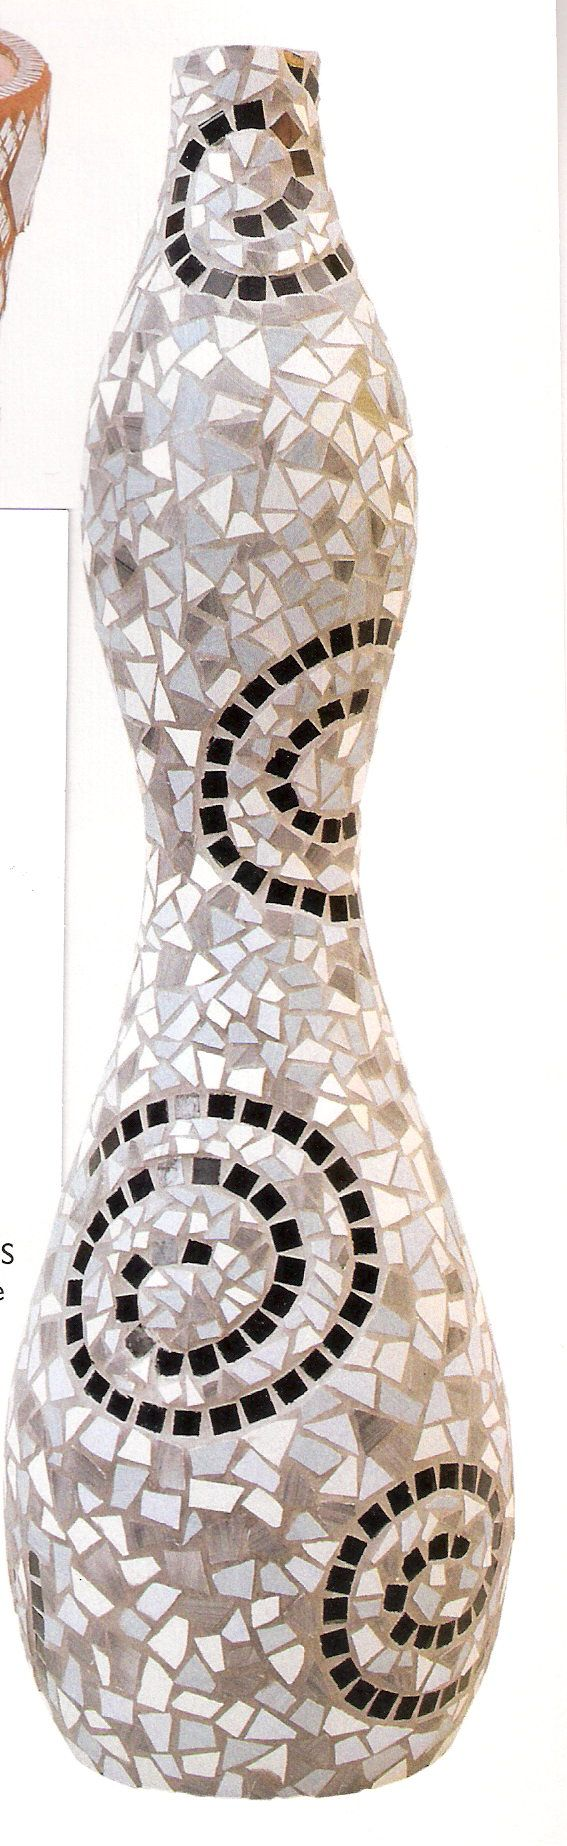 Sold custom made butterfly mosaic table top for mary ann in texas - Find This Pin And More On Mosaic Swirls By Ali1904